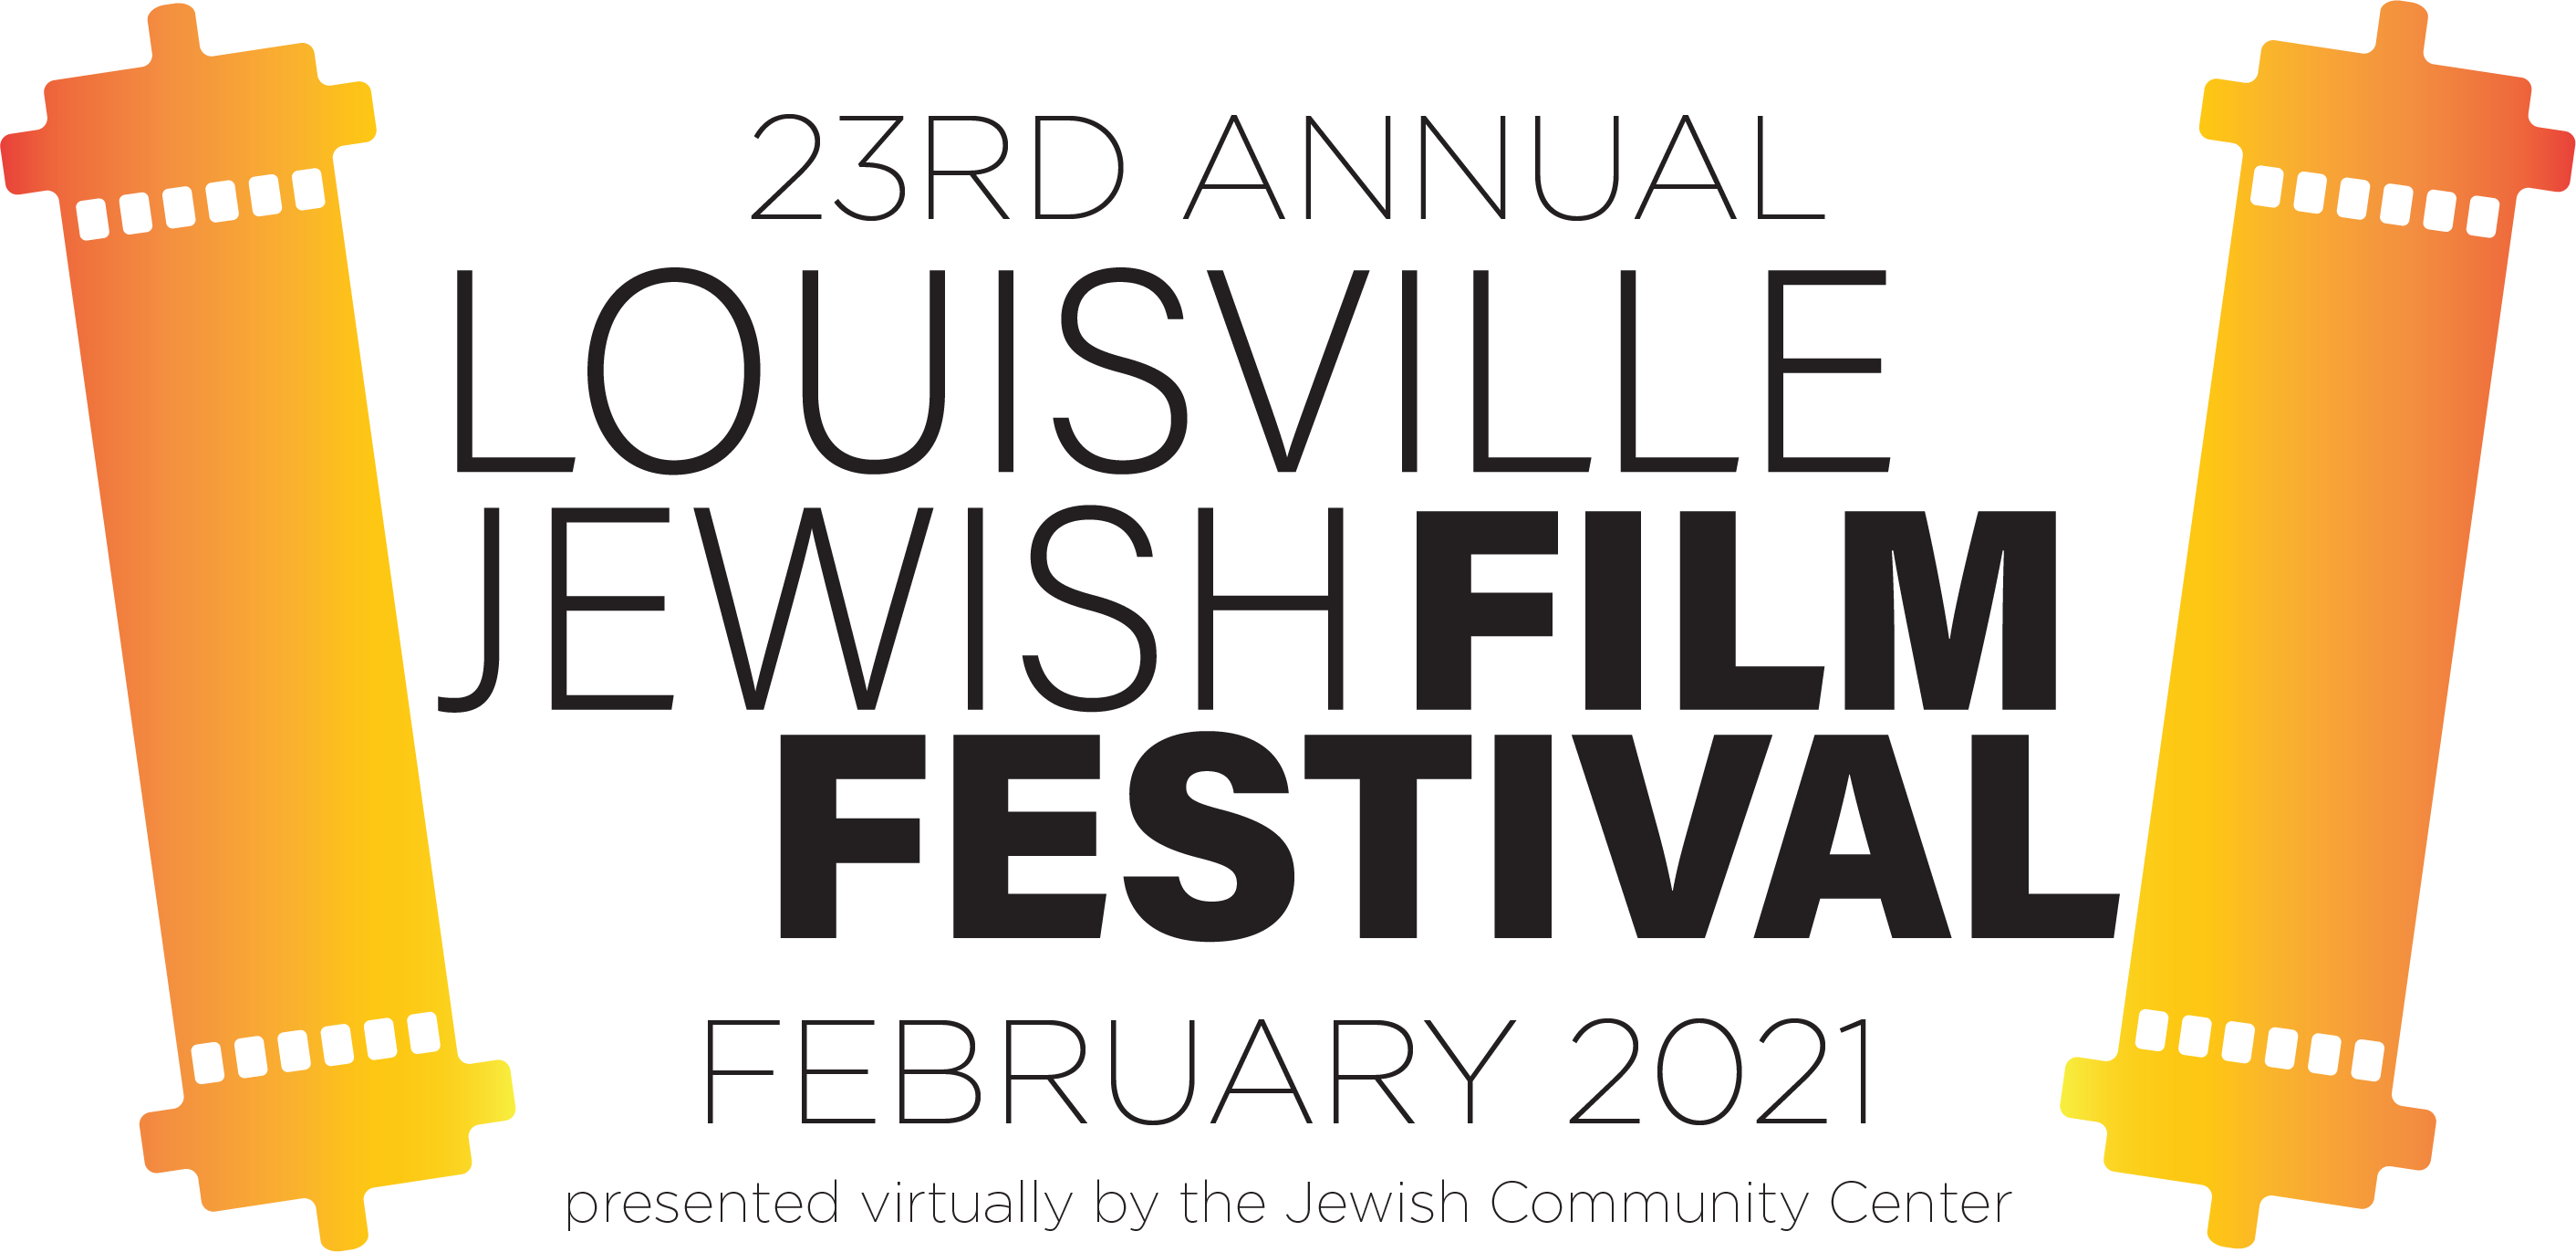 Jewish Community of Louisville